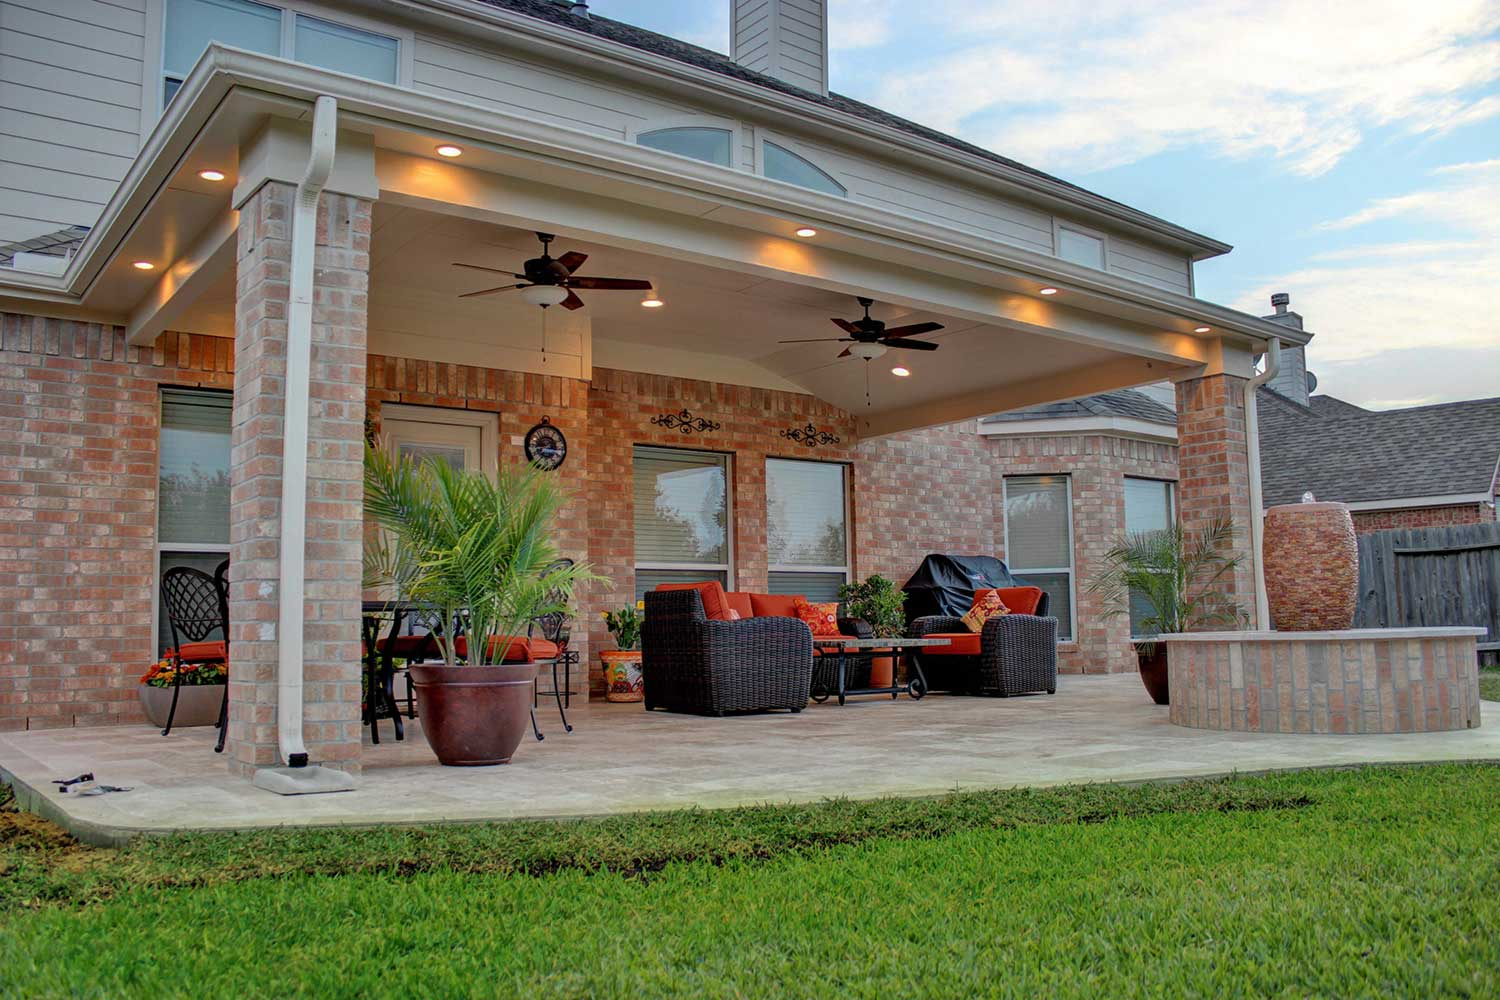 Patio Cover in Cypress, TX - HHI Patio Covers on Backyard Patio Cover Ideas  id=55111